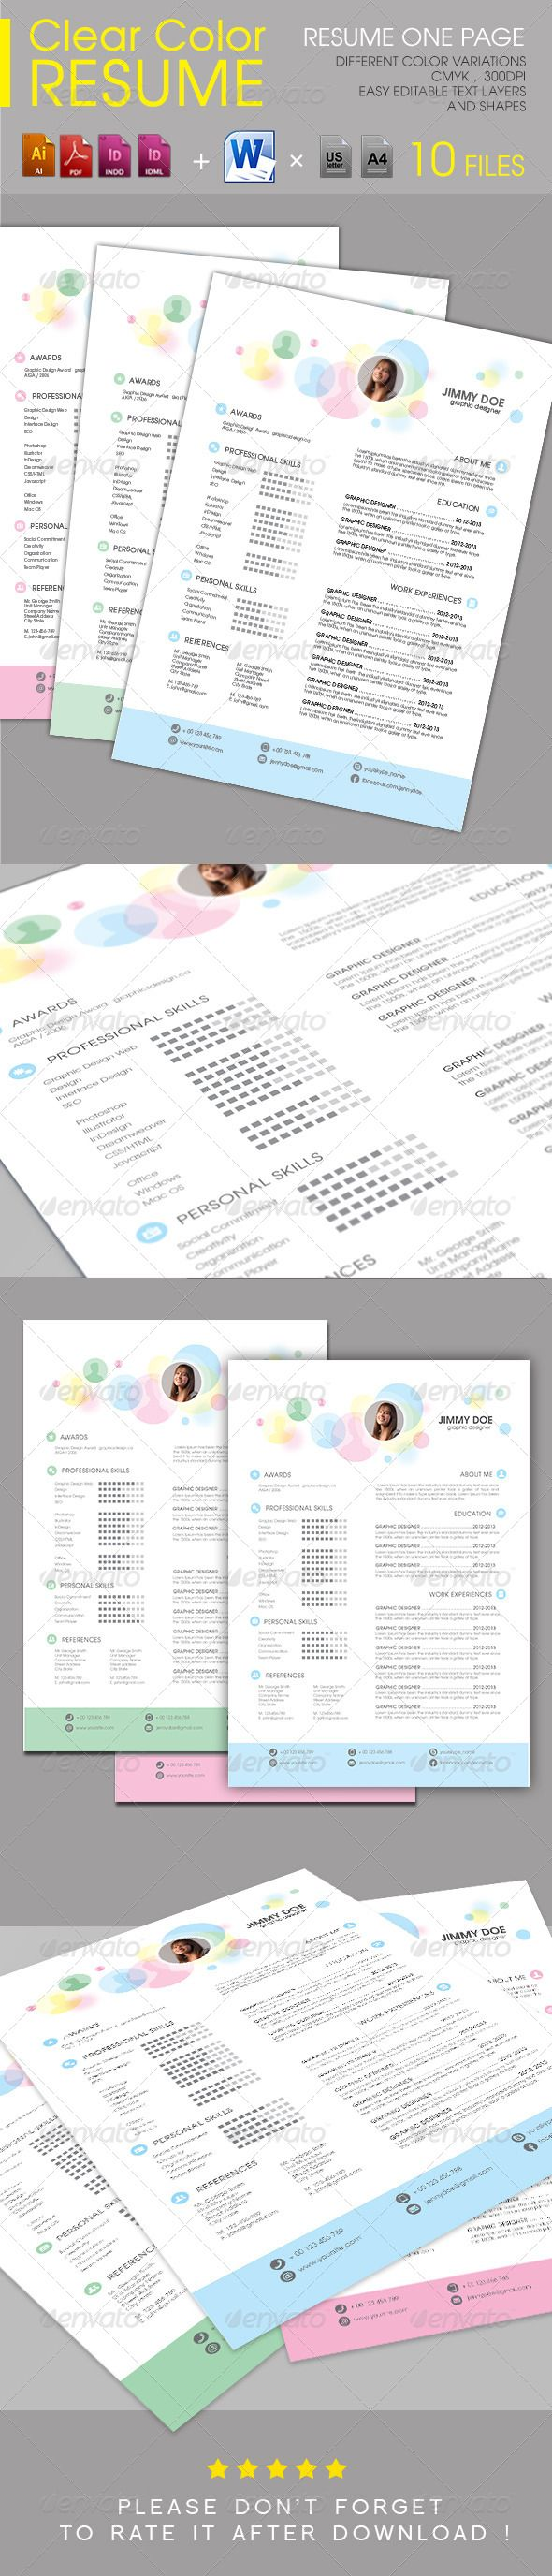 Clear Color Resume